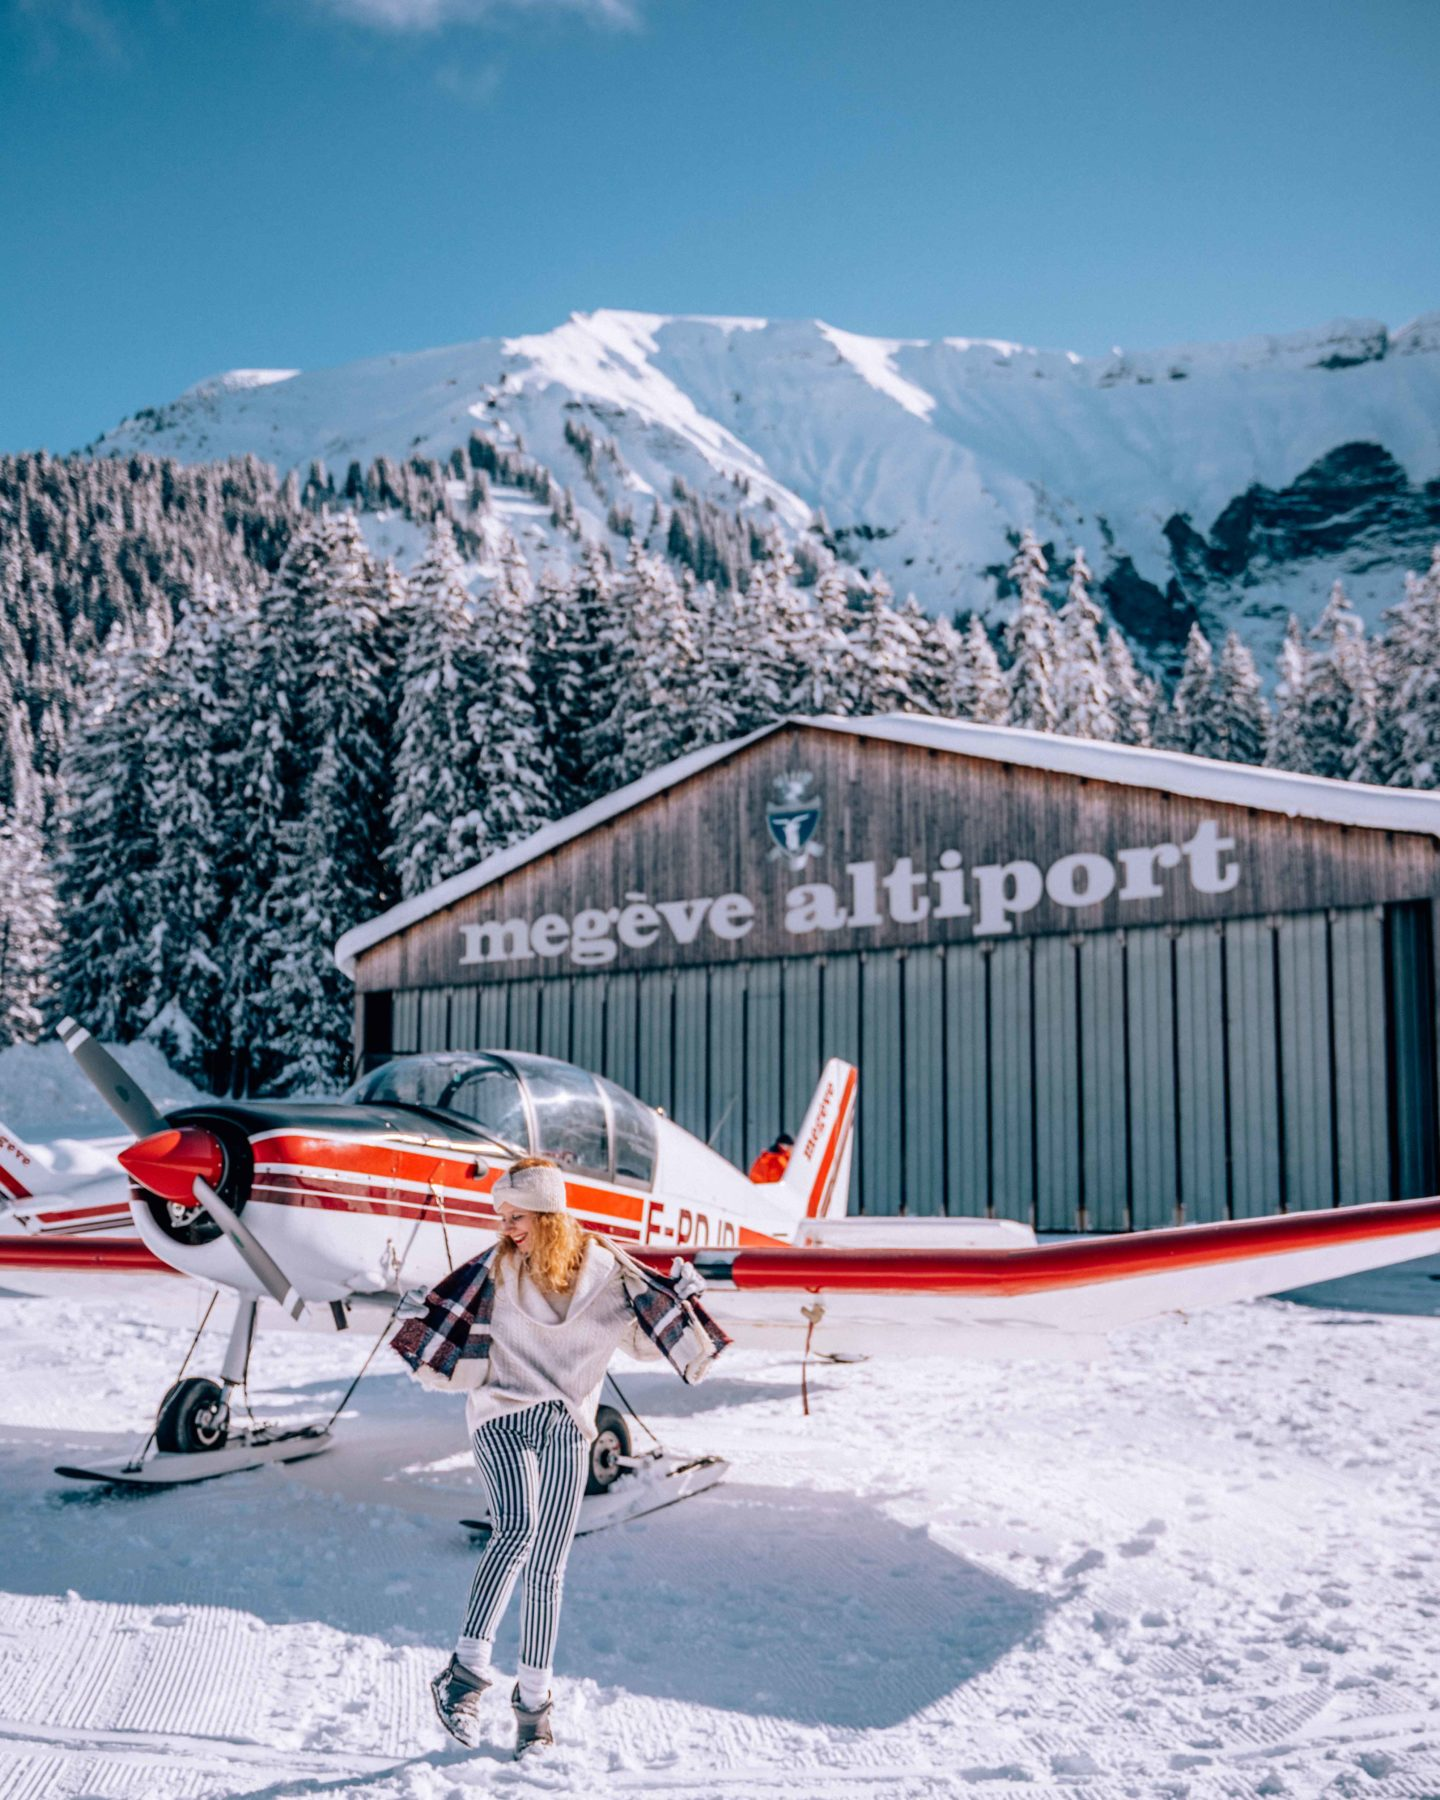 Ready to fly above the Mont Blanc